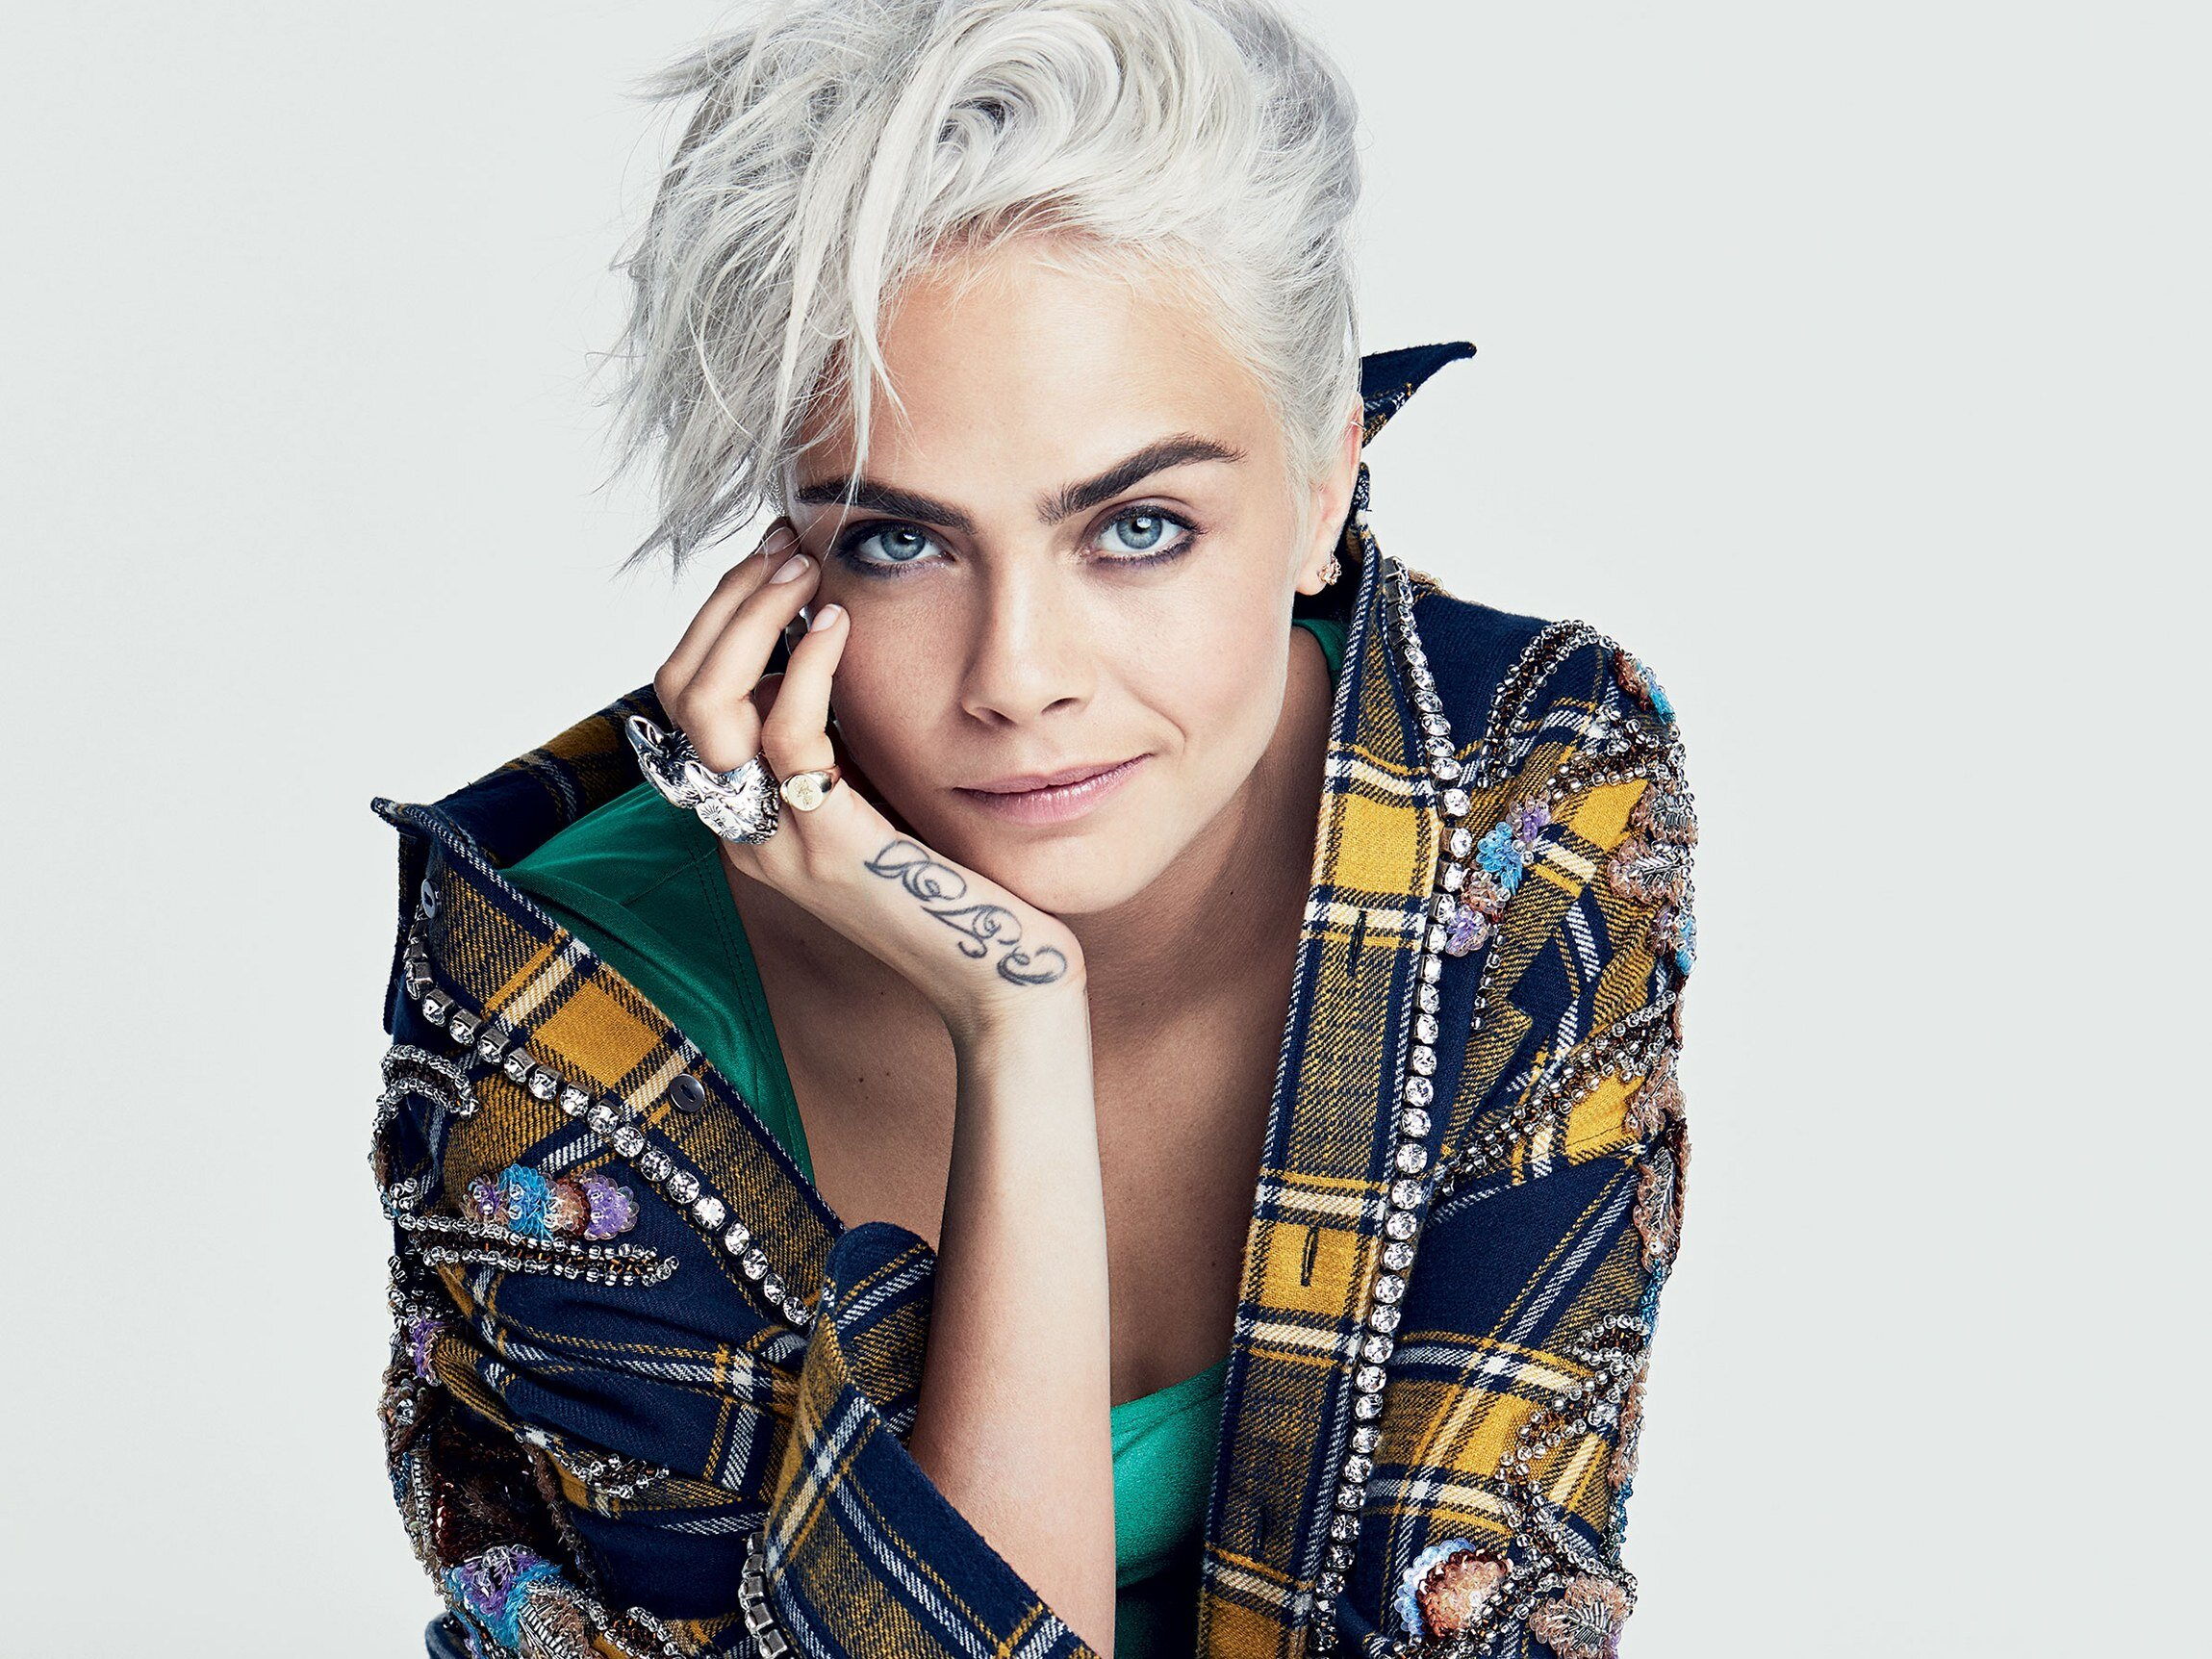 """At 22 she talked about her attraction to both men and women. She dated musician Annie Clark (stage name St. Vincent) for a year and a half, a relationship that taught her """"what love was—real love."""" In a rap battle with James Corden and Dave Franco, she joked, """"I've hooked up with hotter girls than both of you combined."""" And many women identify: """"I love Cara Delevingne,"""" one fan wrote on Twitter. """"Her openness about her sexuality…helped me accept myself."""" Last year she took on another stigmatized issue, depression, talking about her own diagnosis in a series of interviews. """"Mental illness goes unseen,"""" she said, """"but I don't want it to be unheard."""""""